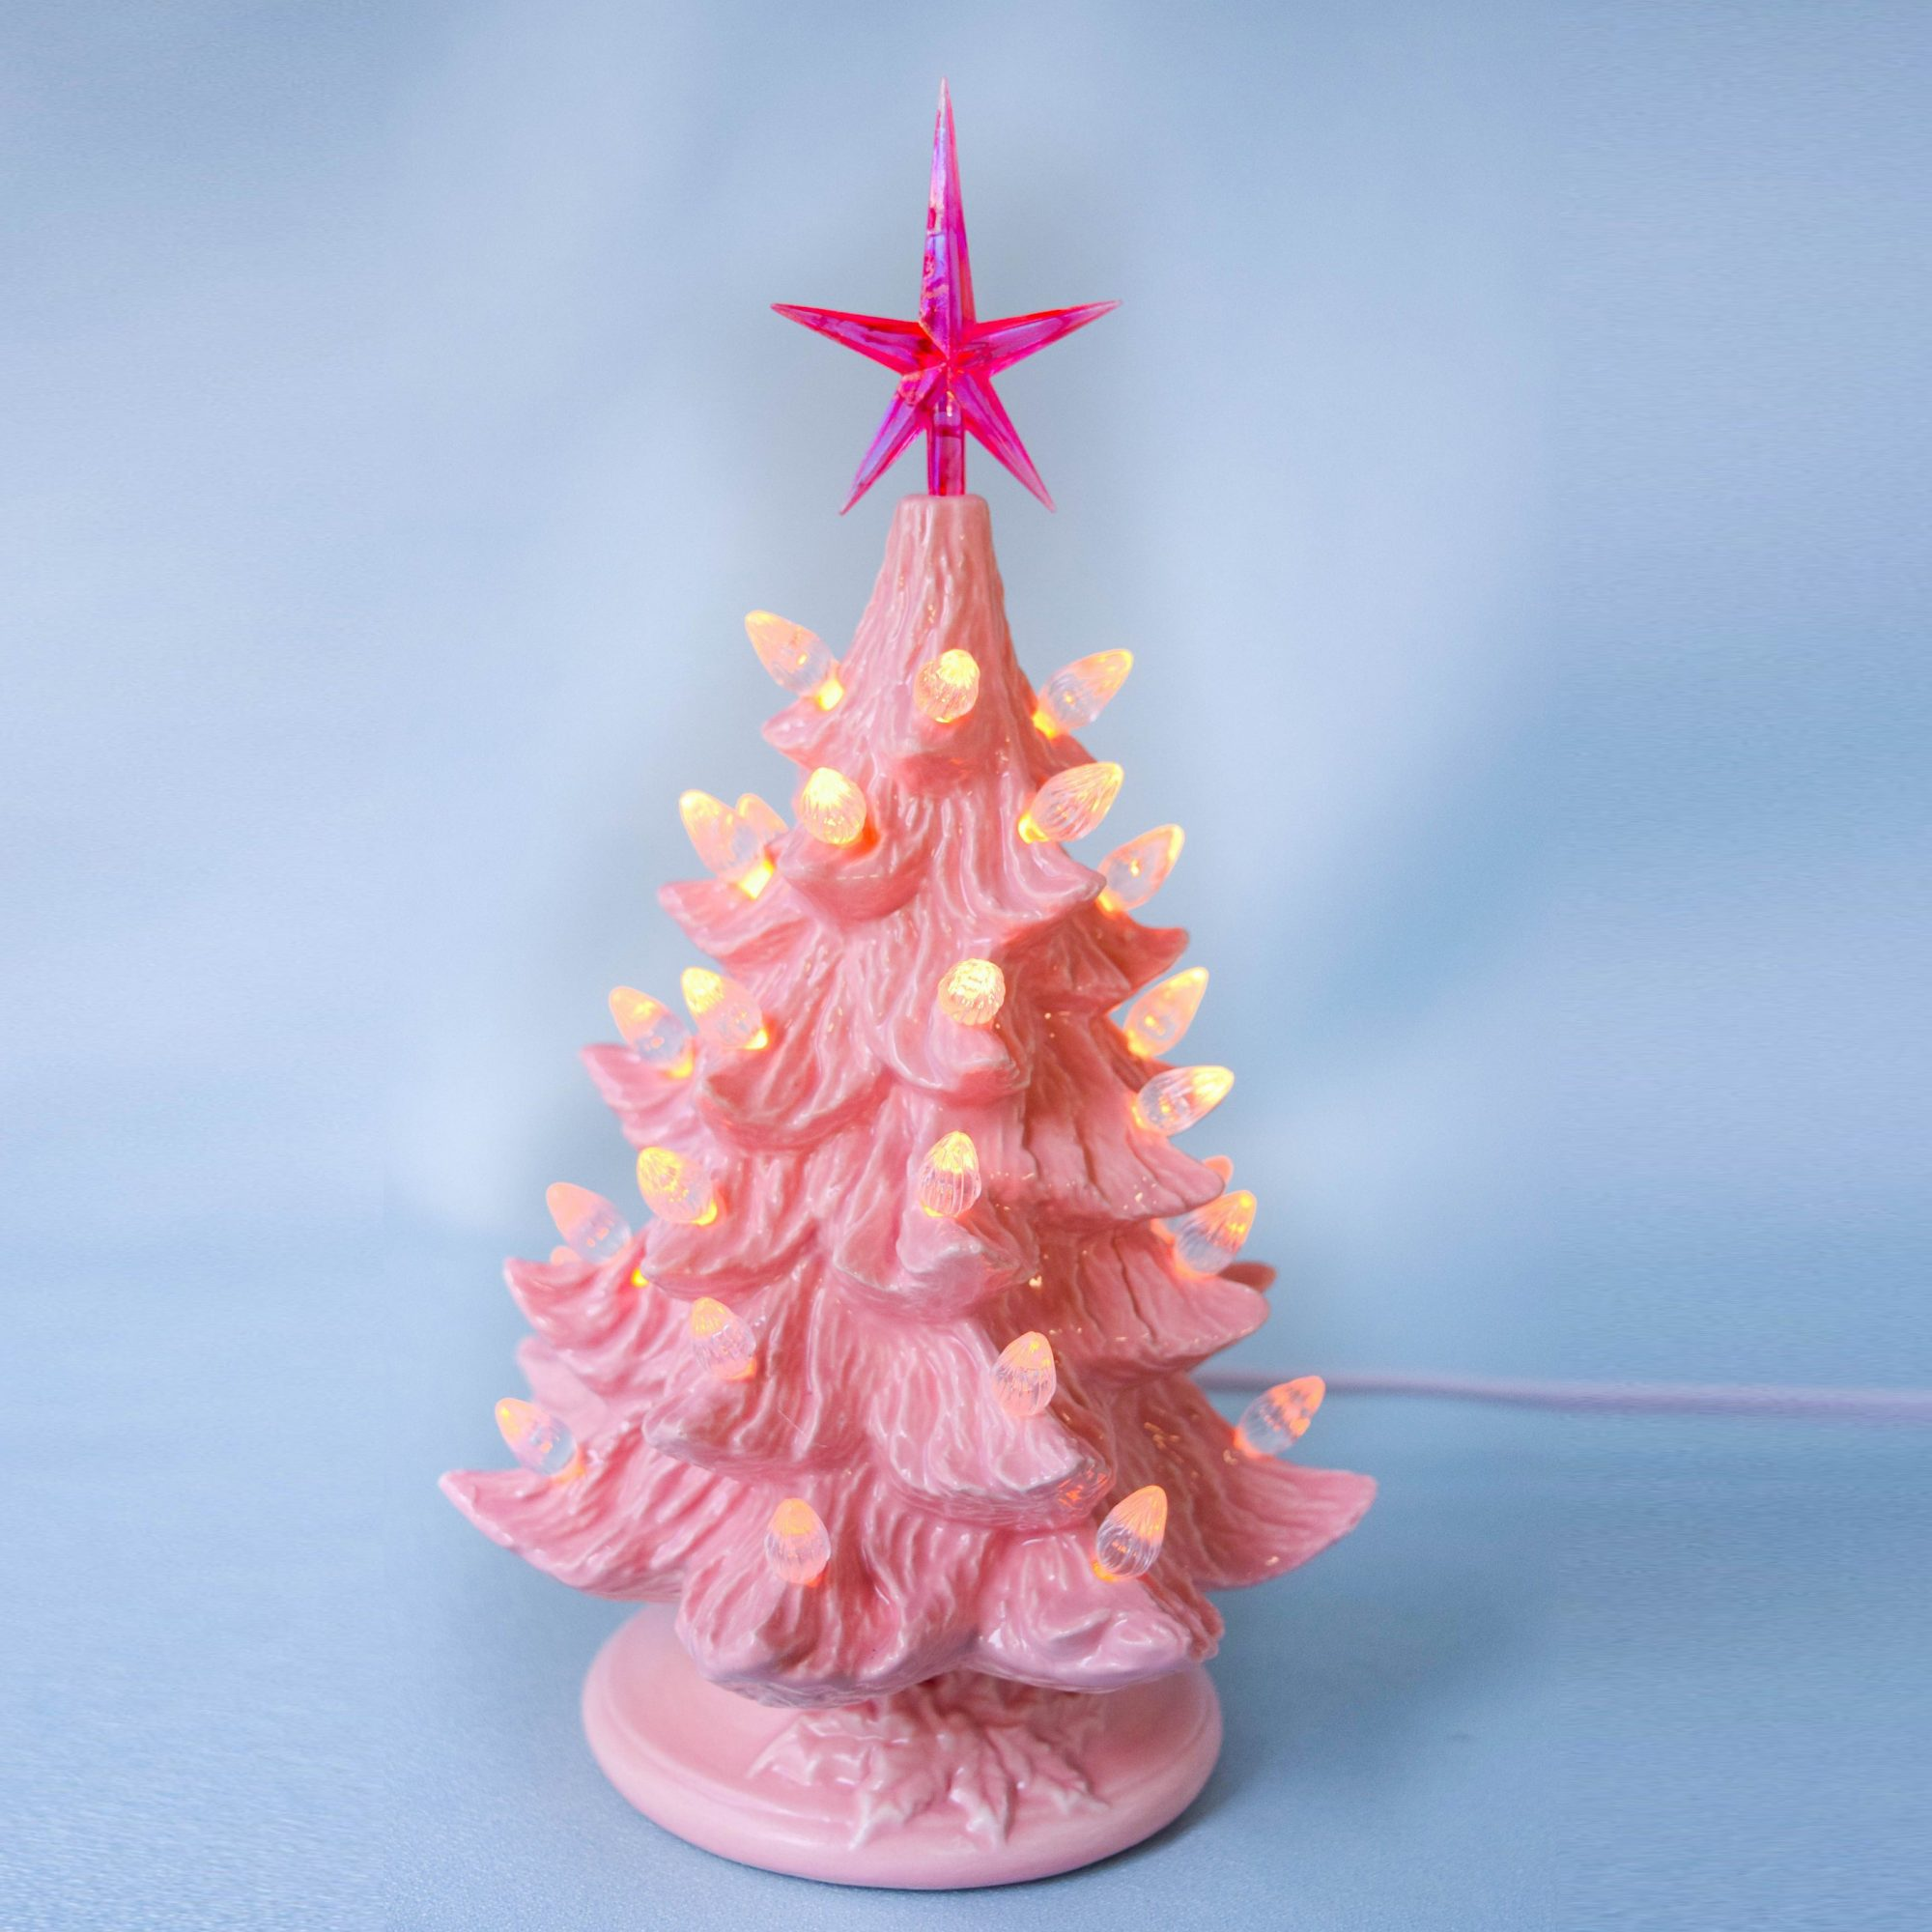 Grandma's Favorite Ceramic Christmas Trees Just Got a Valentine's Day Makeover